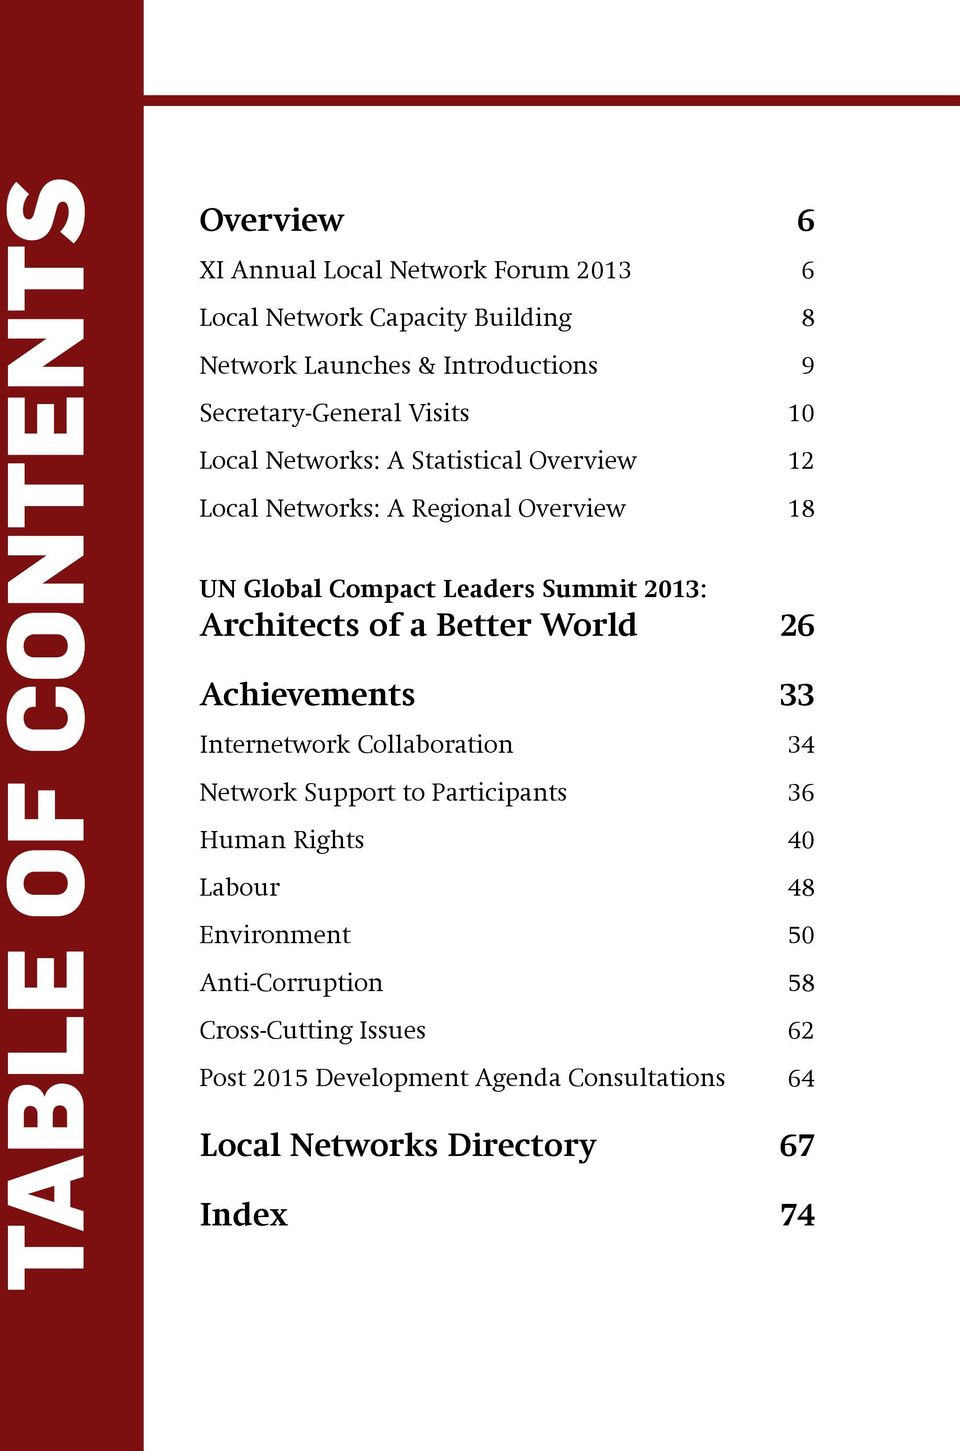 2013: Architects of a Better World 26 Achievements 33 Internetwork Collaboration 34 Network Support to Participants 36 Human Rights 40 Labour